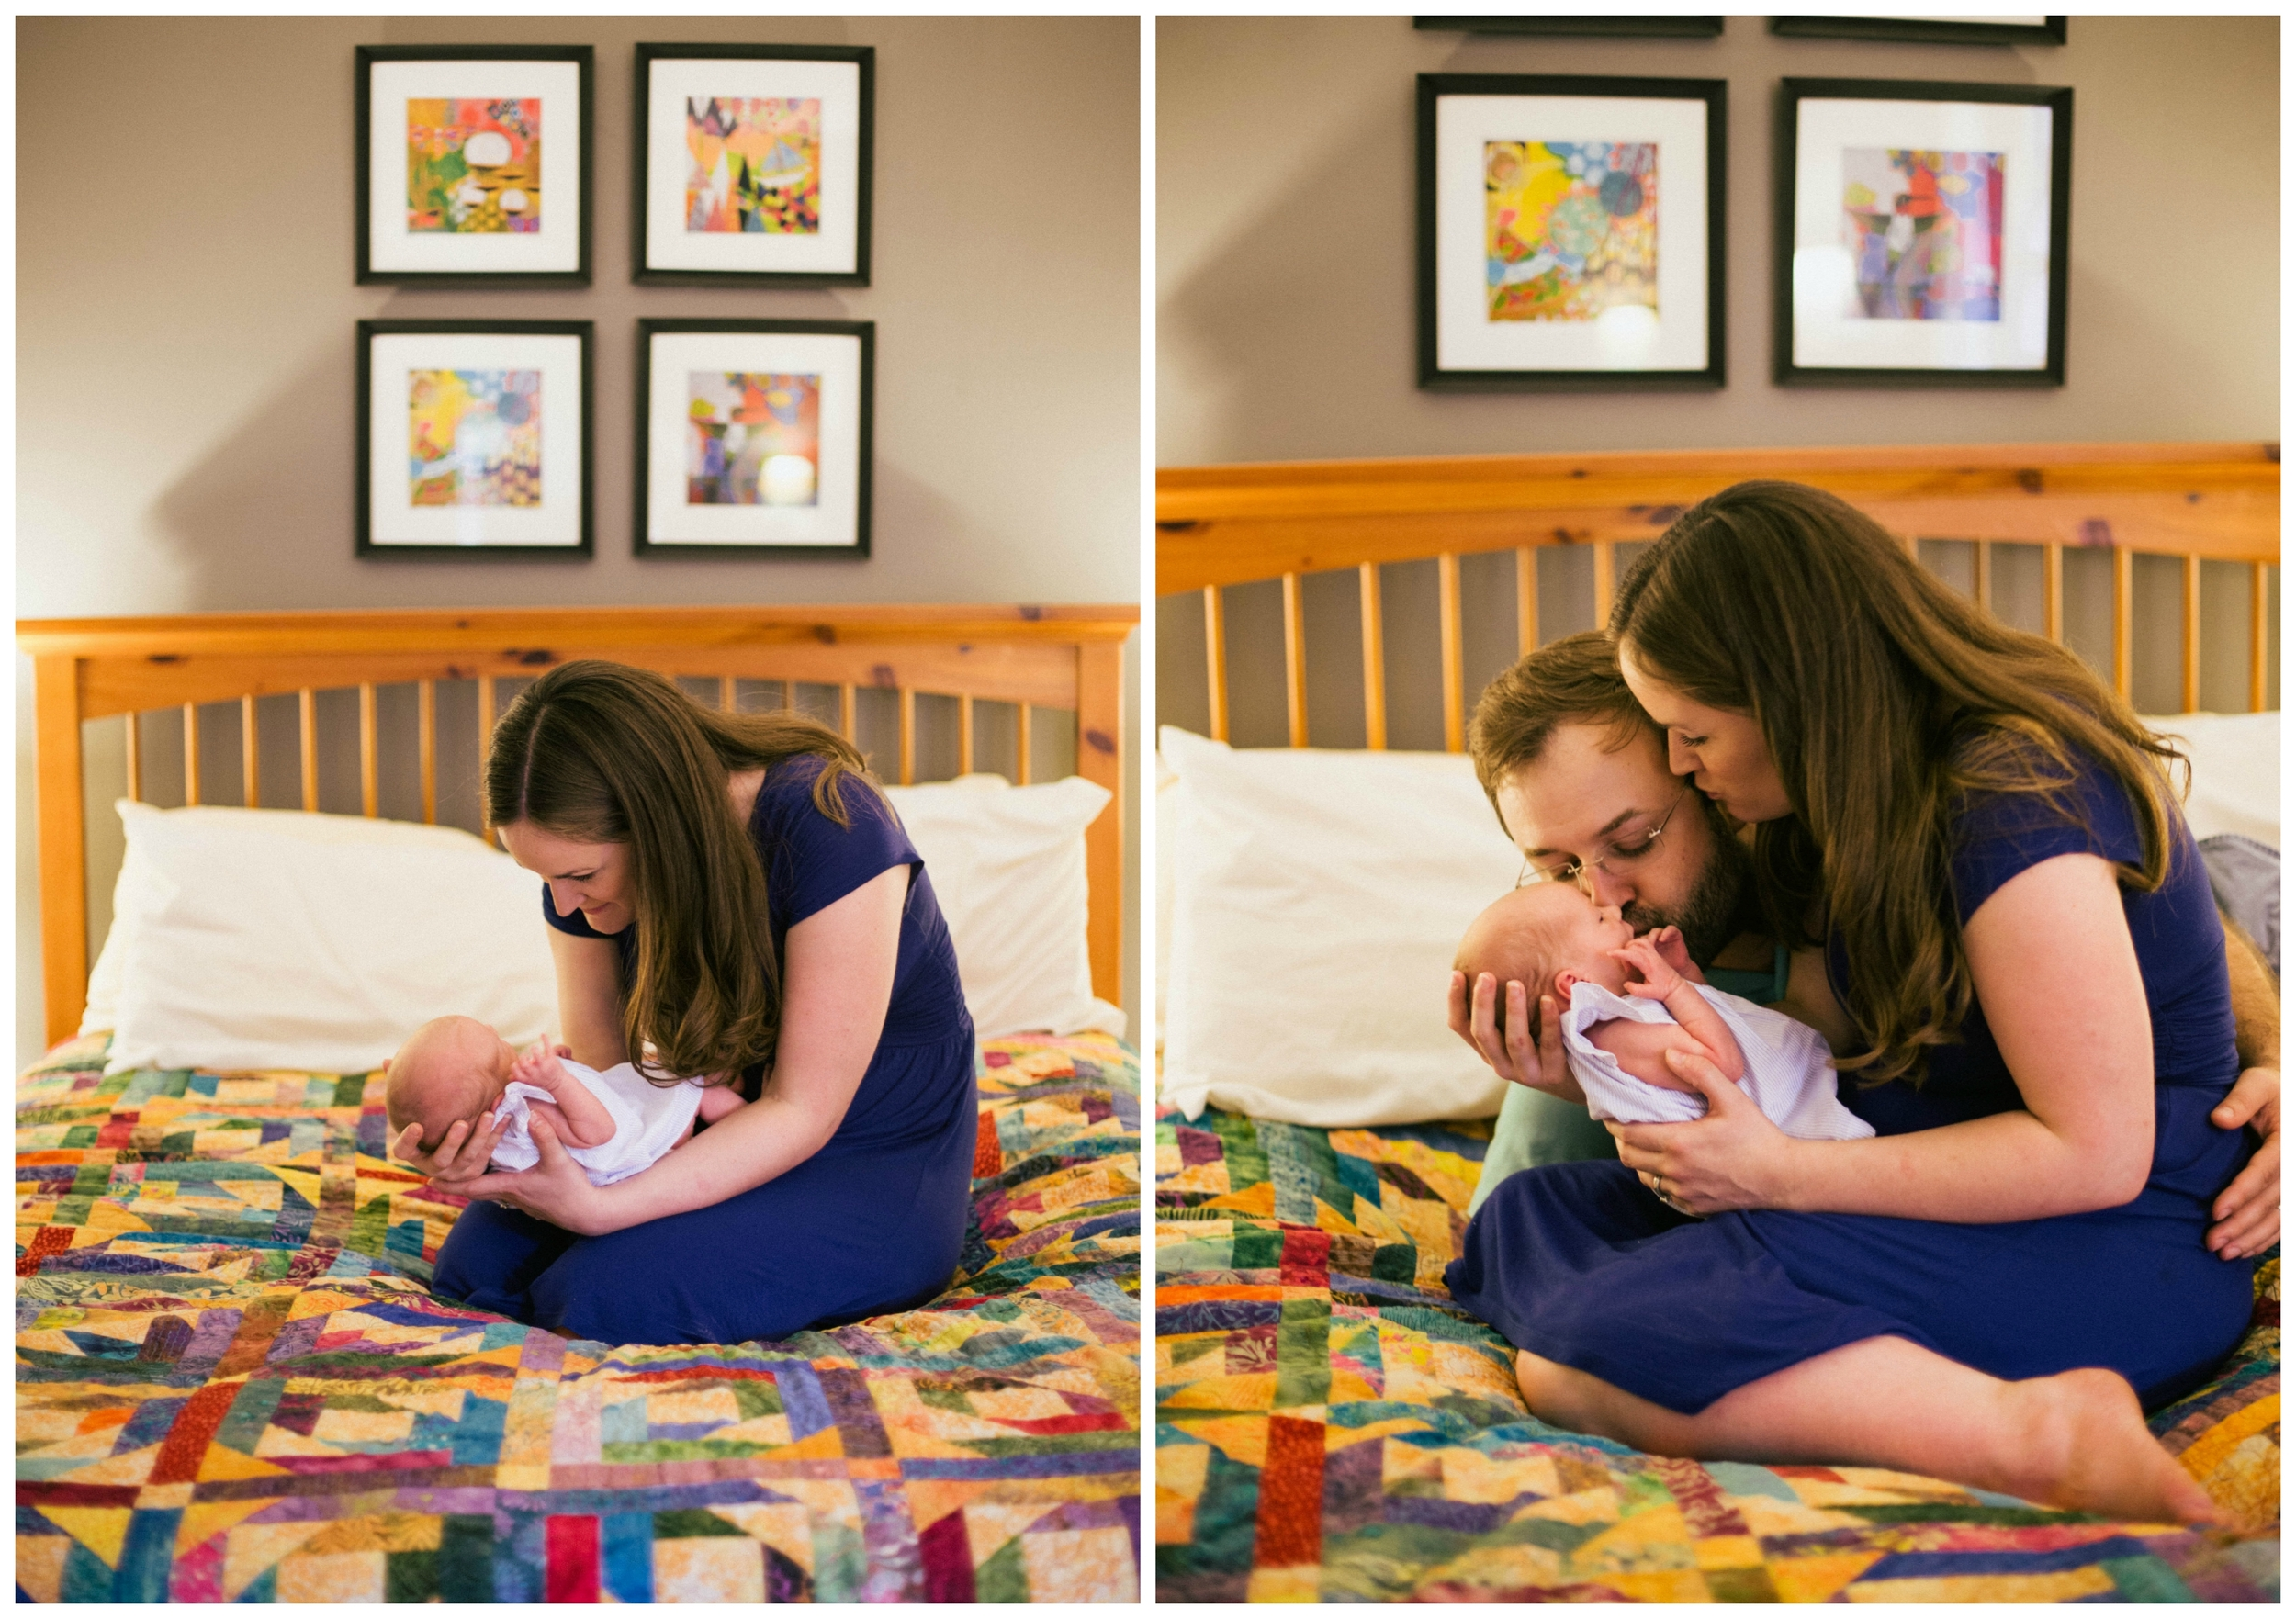 newborn lifestyle family photos on bed with colorful quilt